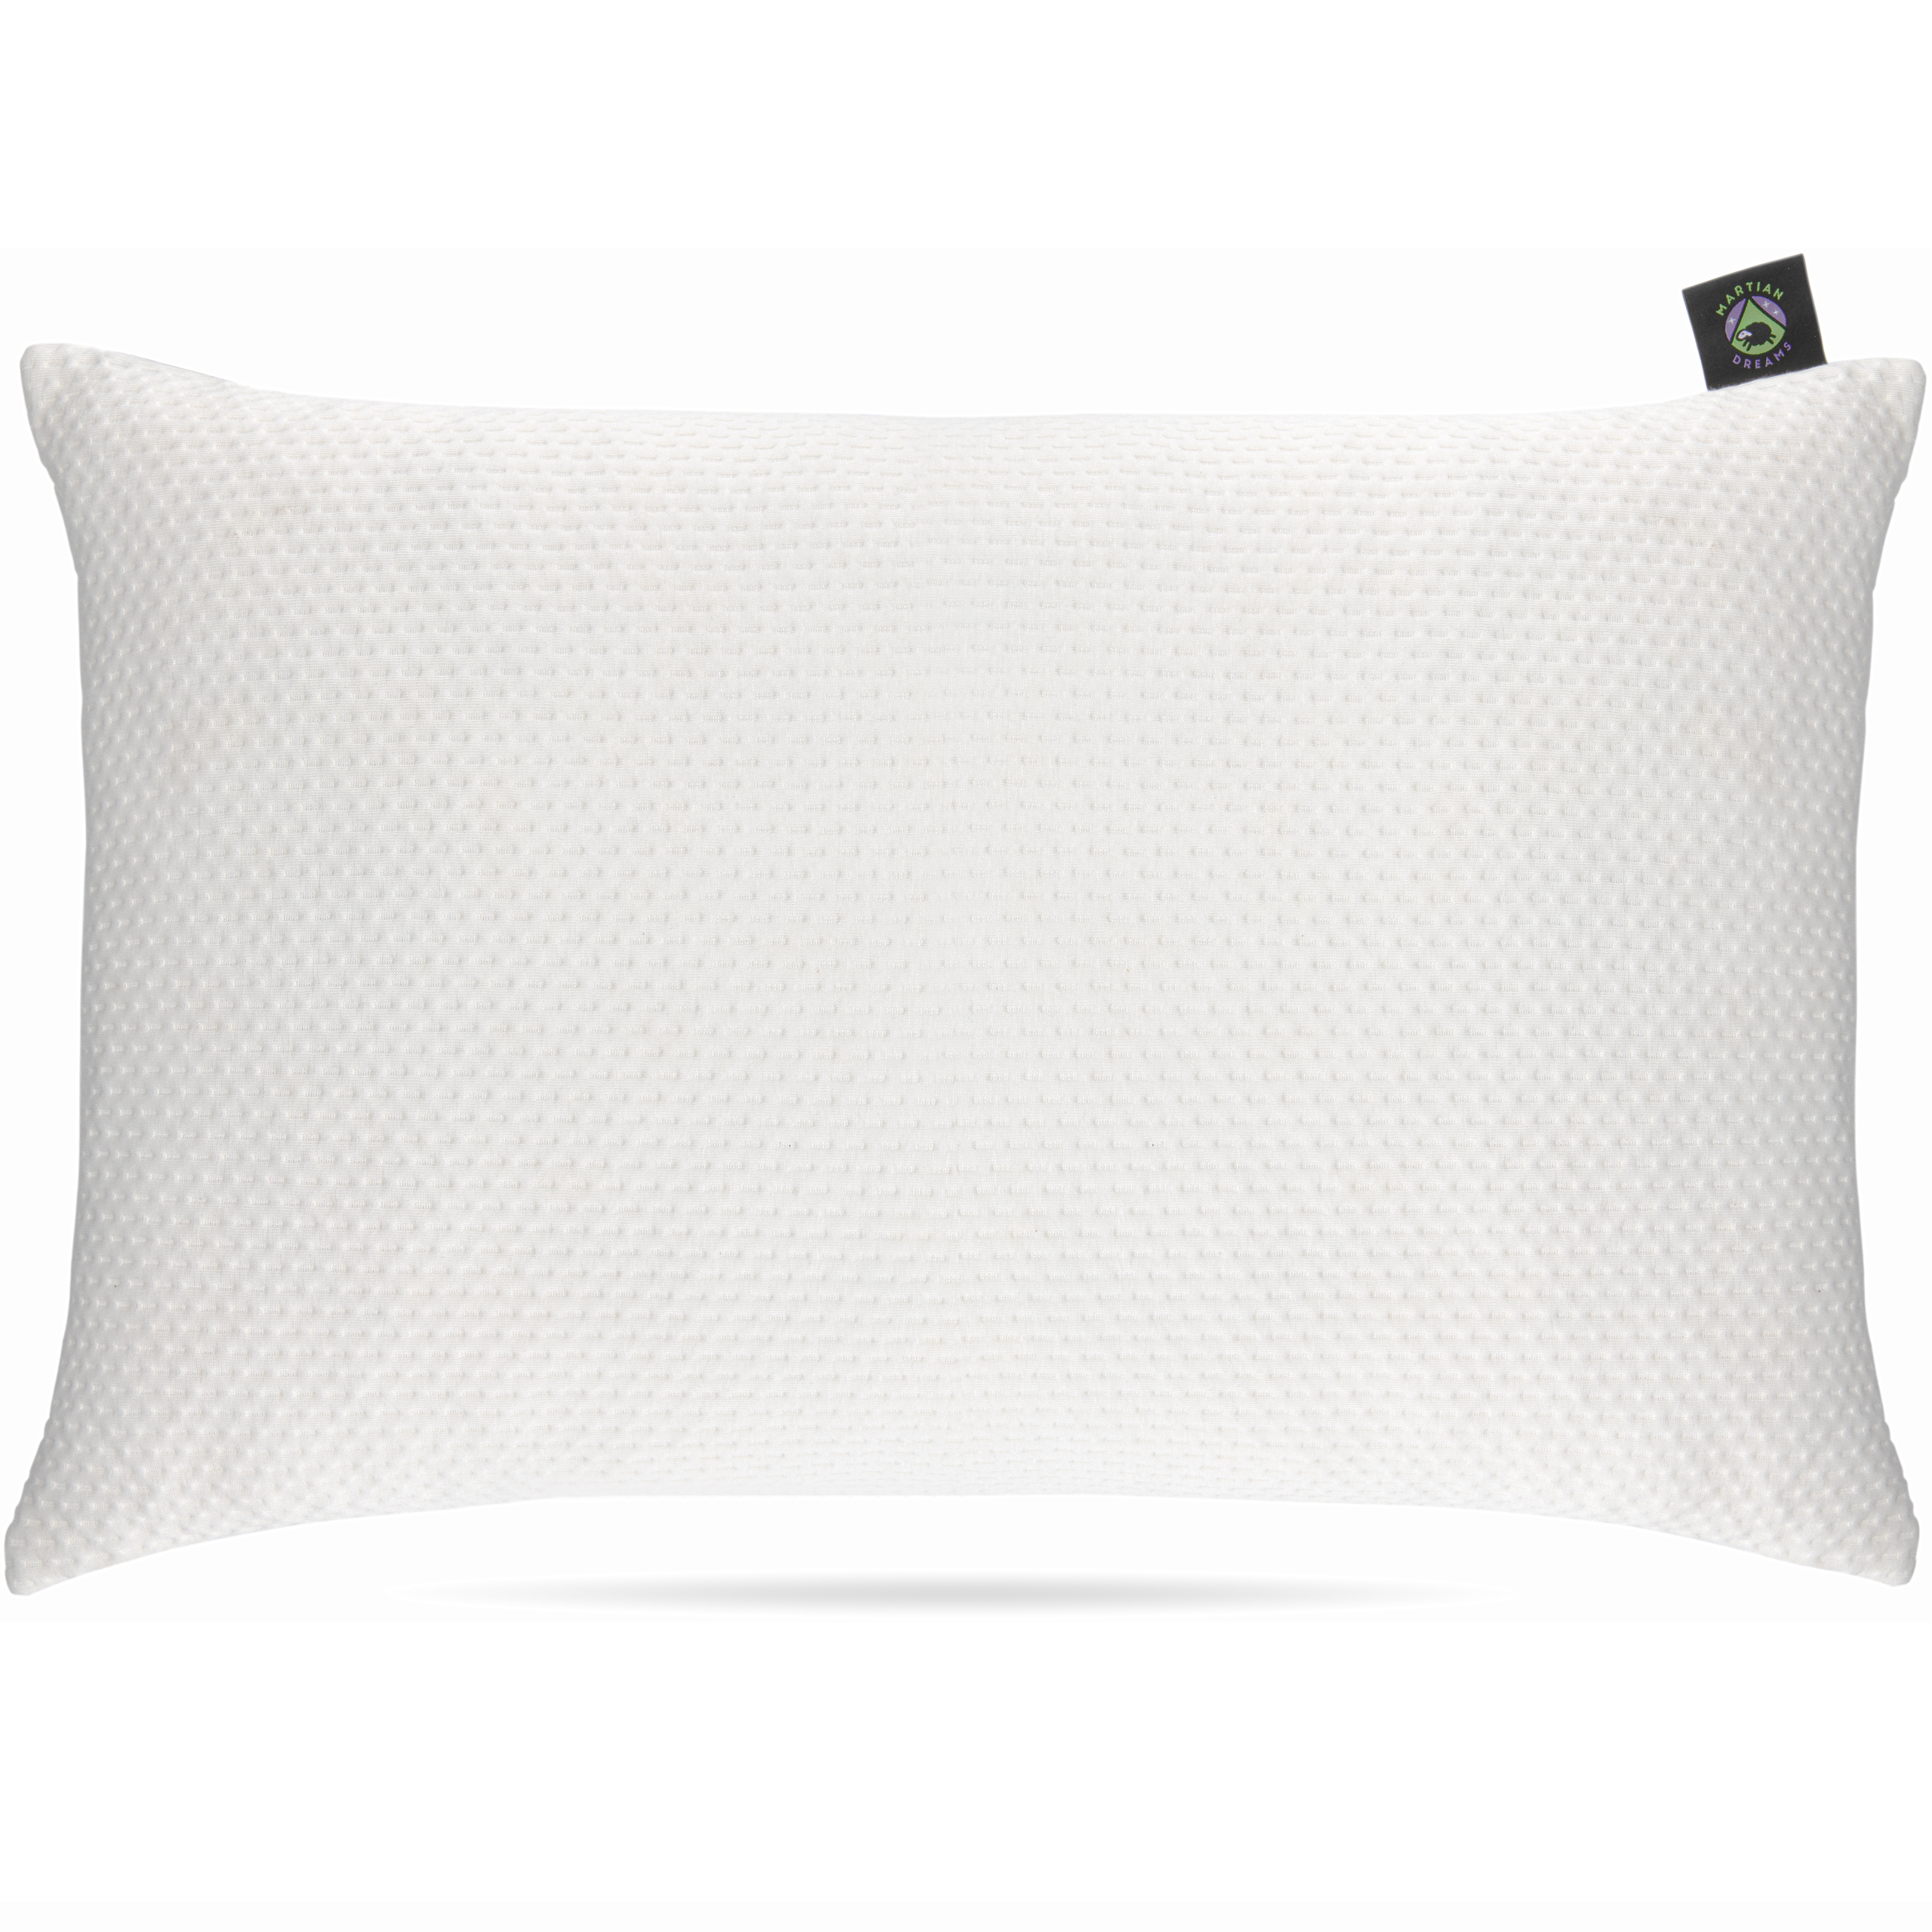 How Do You Wash A Bamboo Pillow? | My